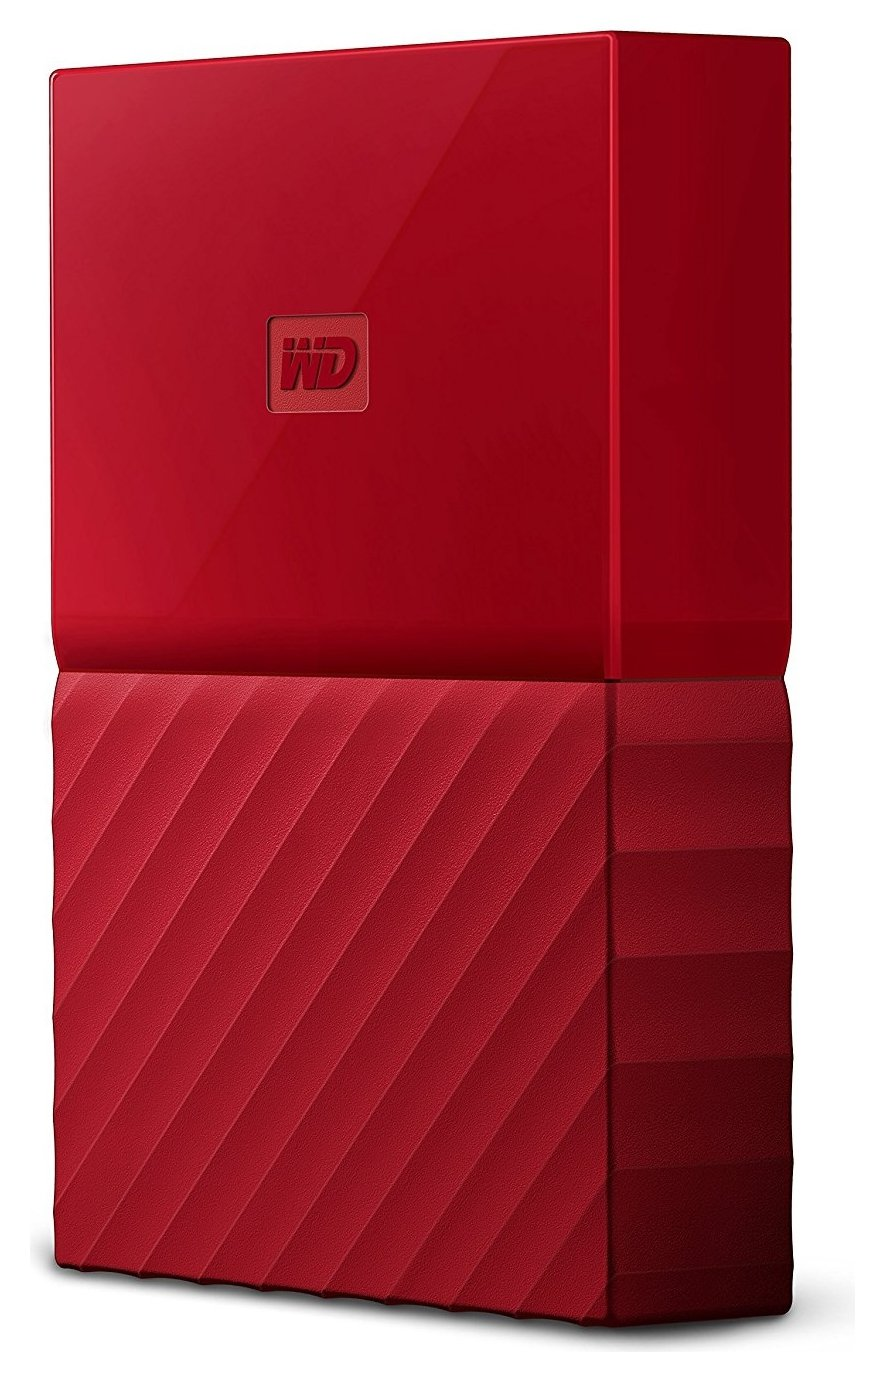 wd-my-passport-4tb-portable-hard-drive-red